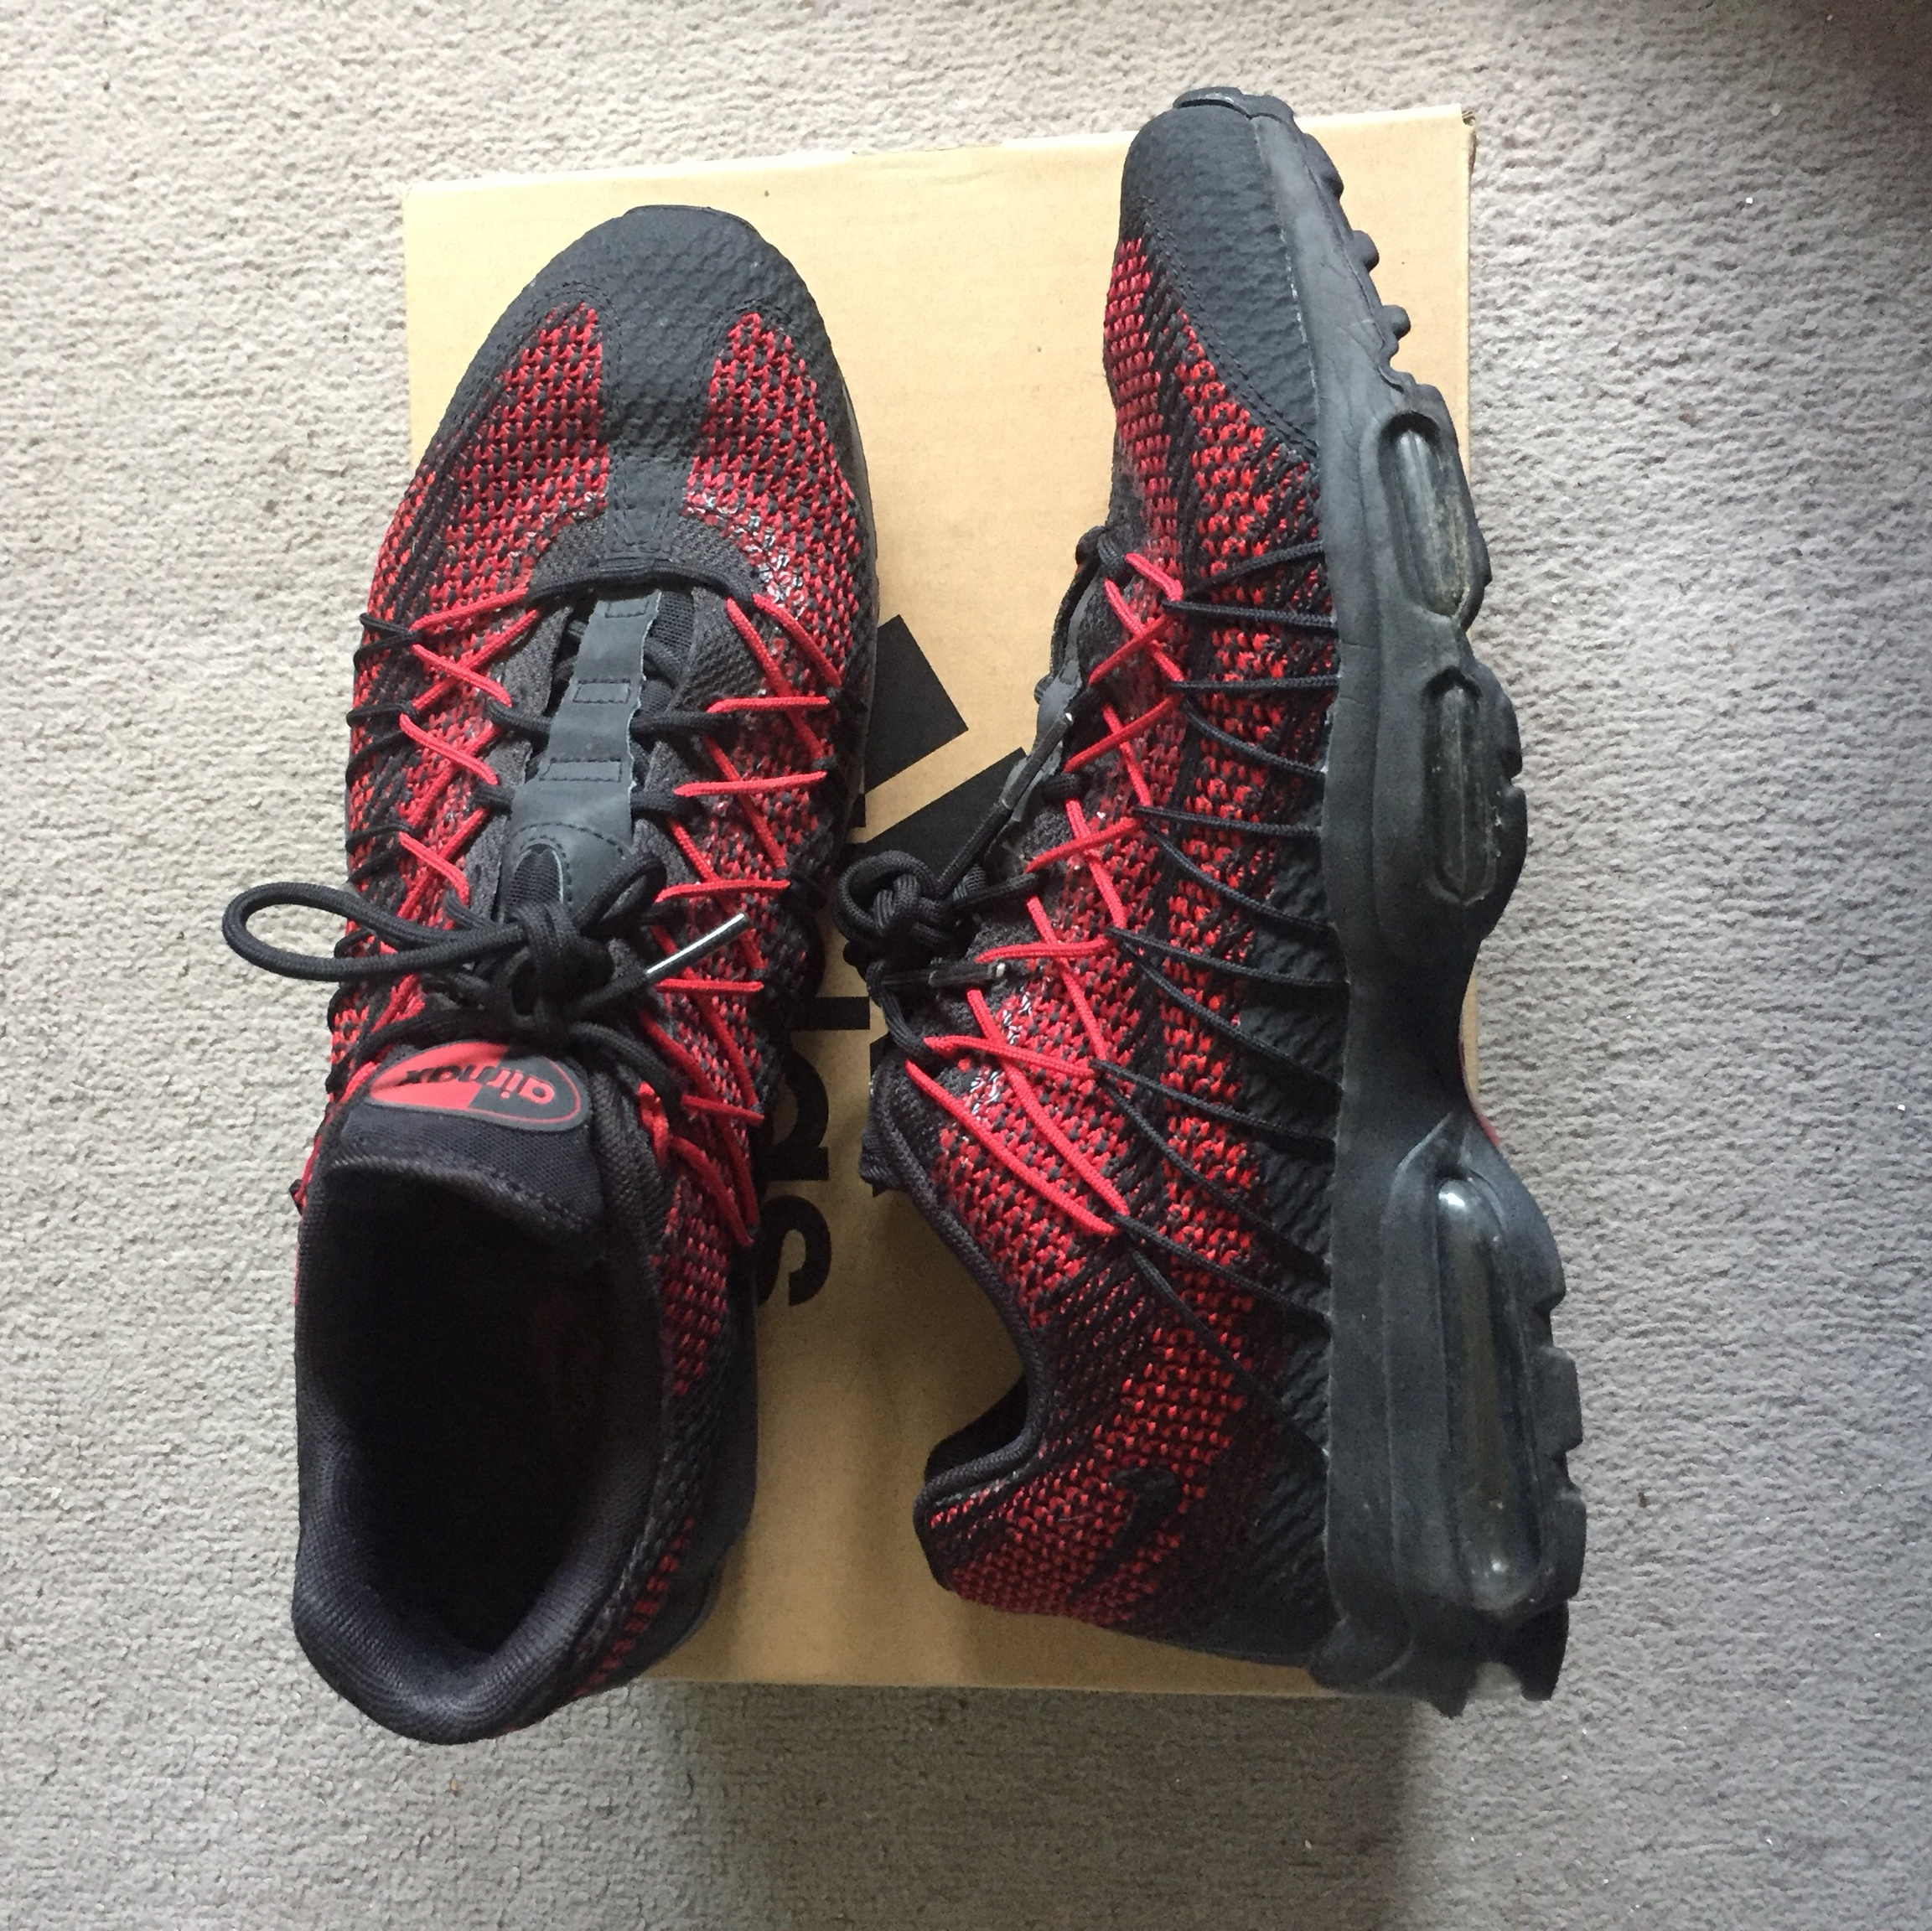 Nike air max 95 ultra jacquard black and red Size 9 Depop